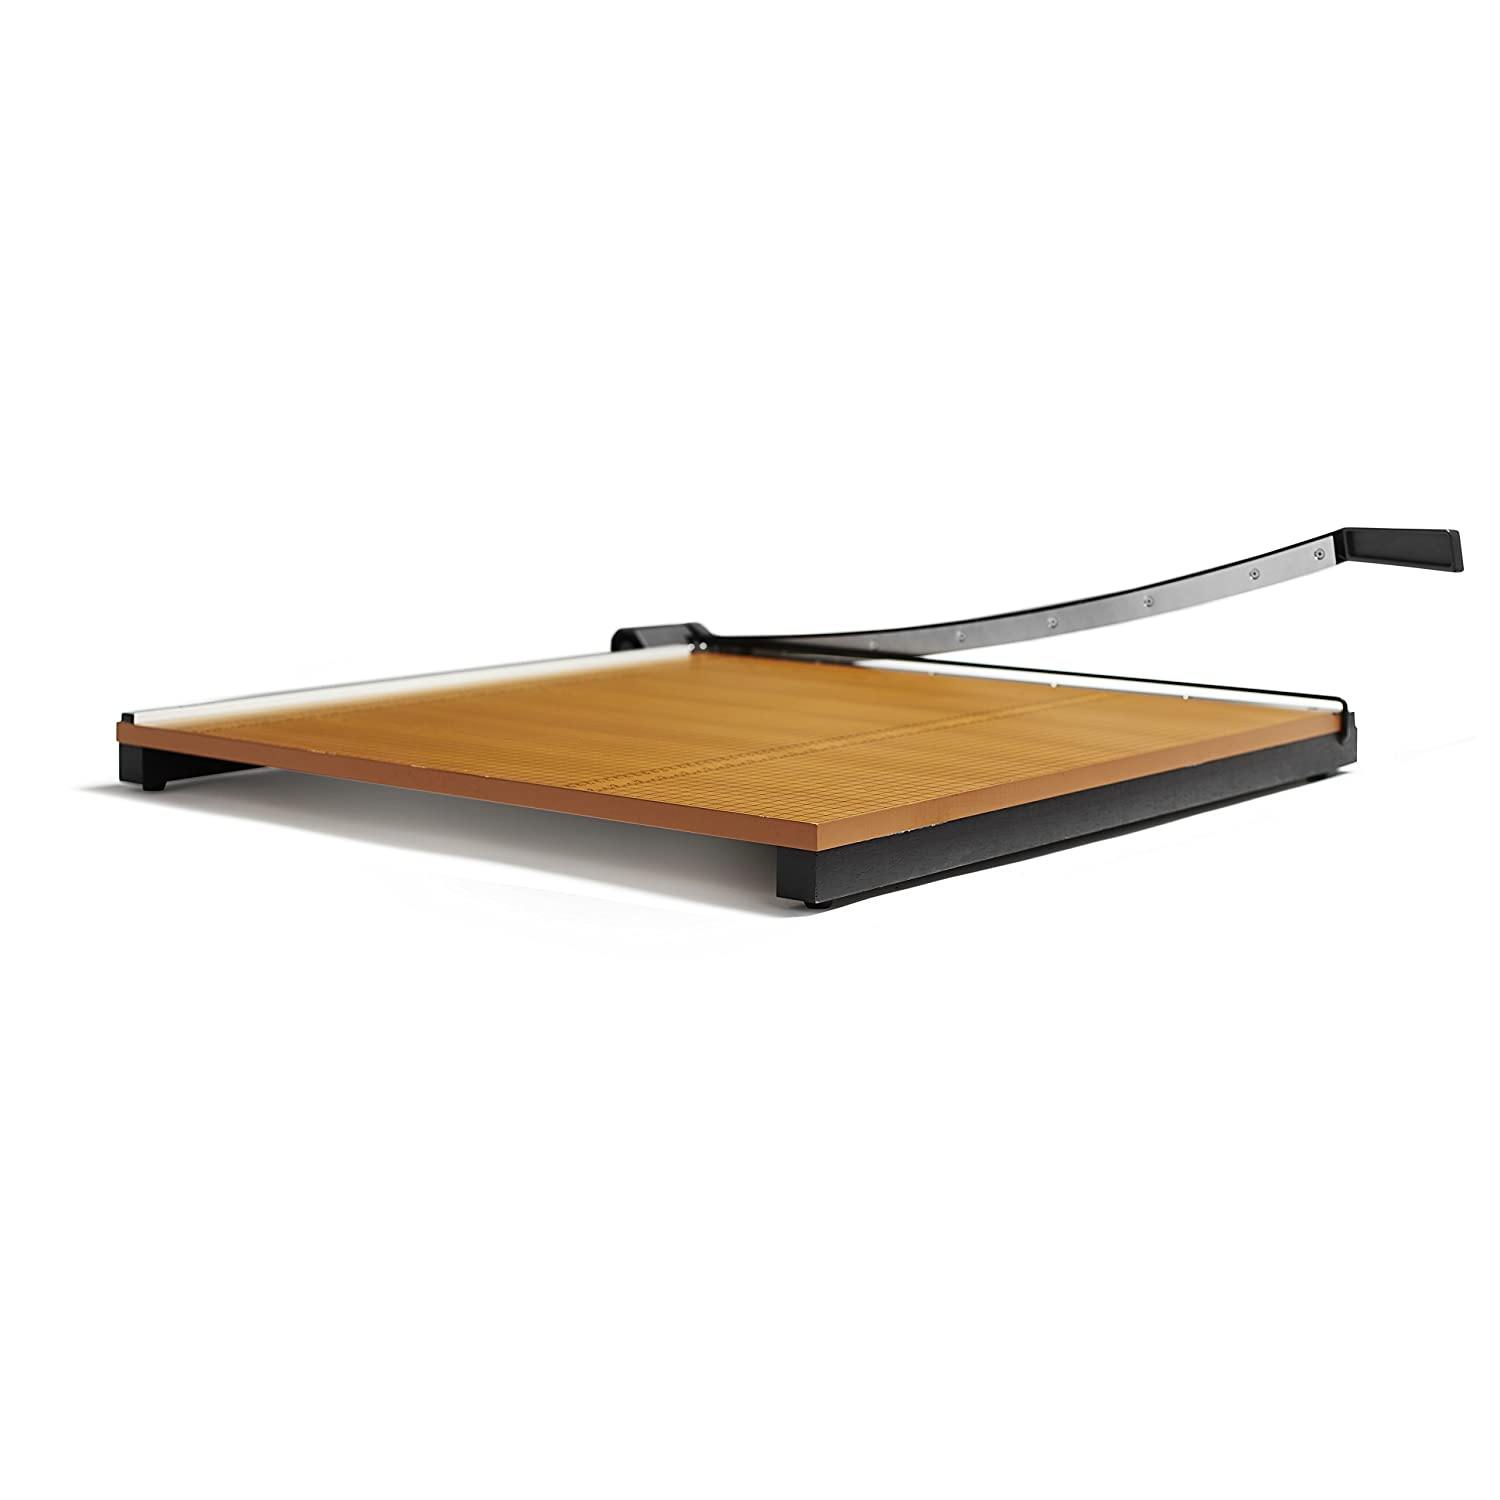 X-ACTO Commercial Grade 12 x 12-Inch Square Guillotine Paper Cutter (26612) Elmers